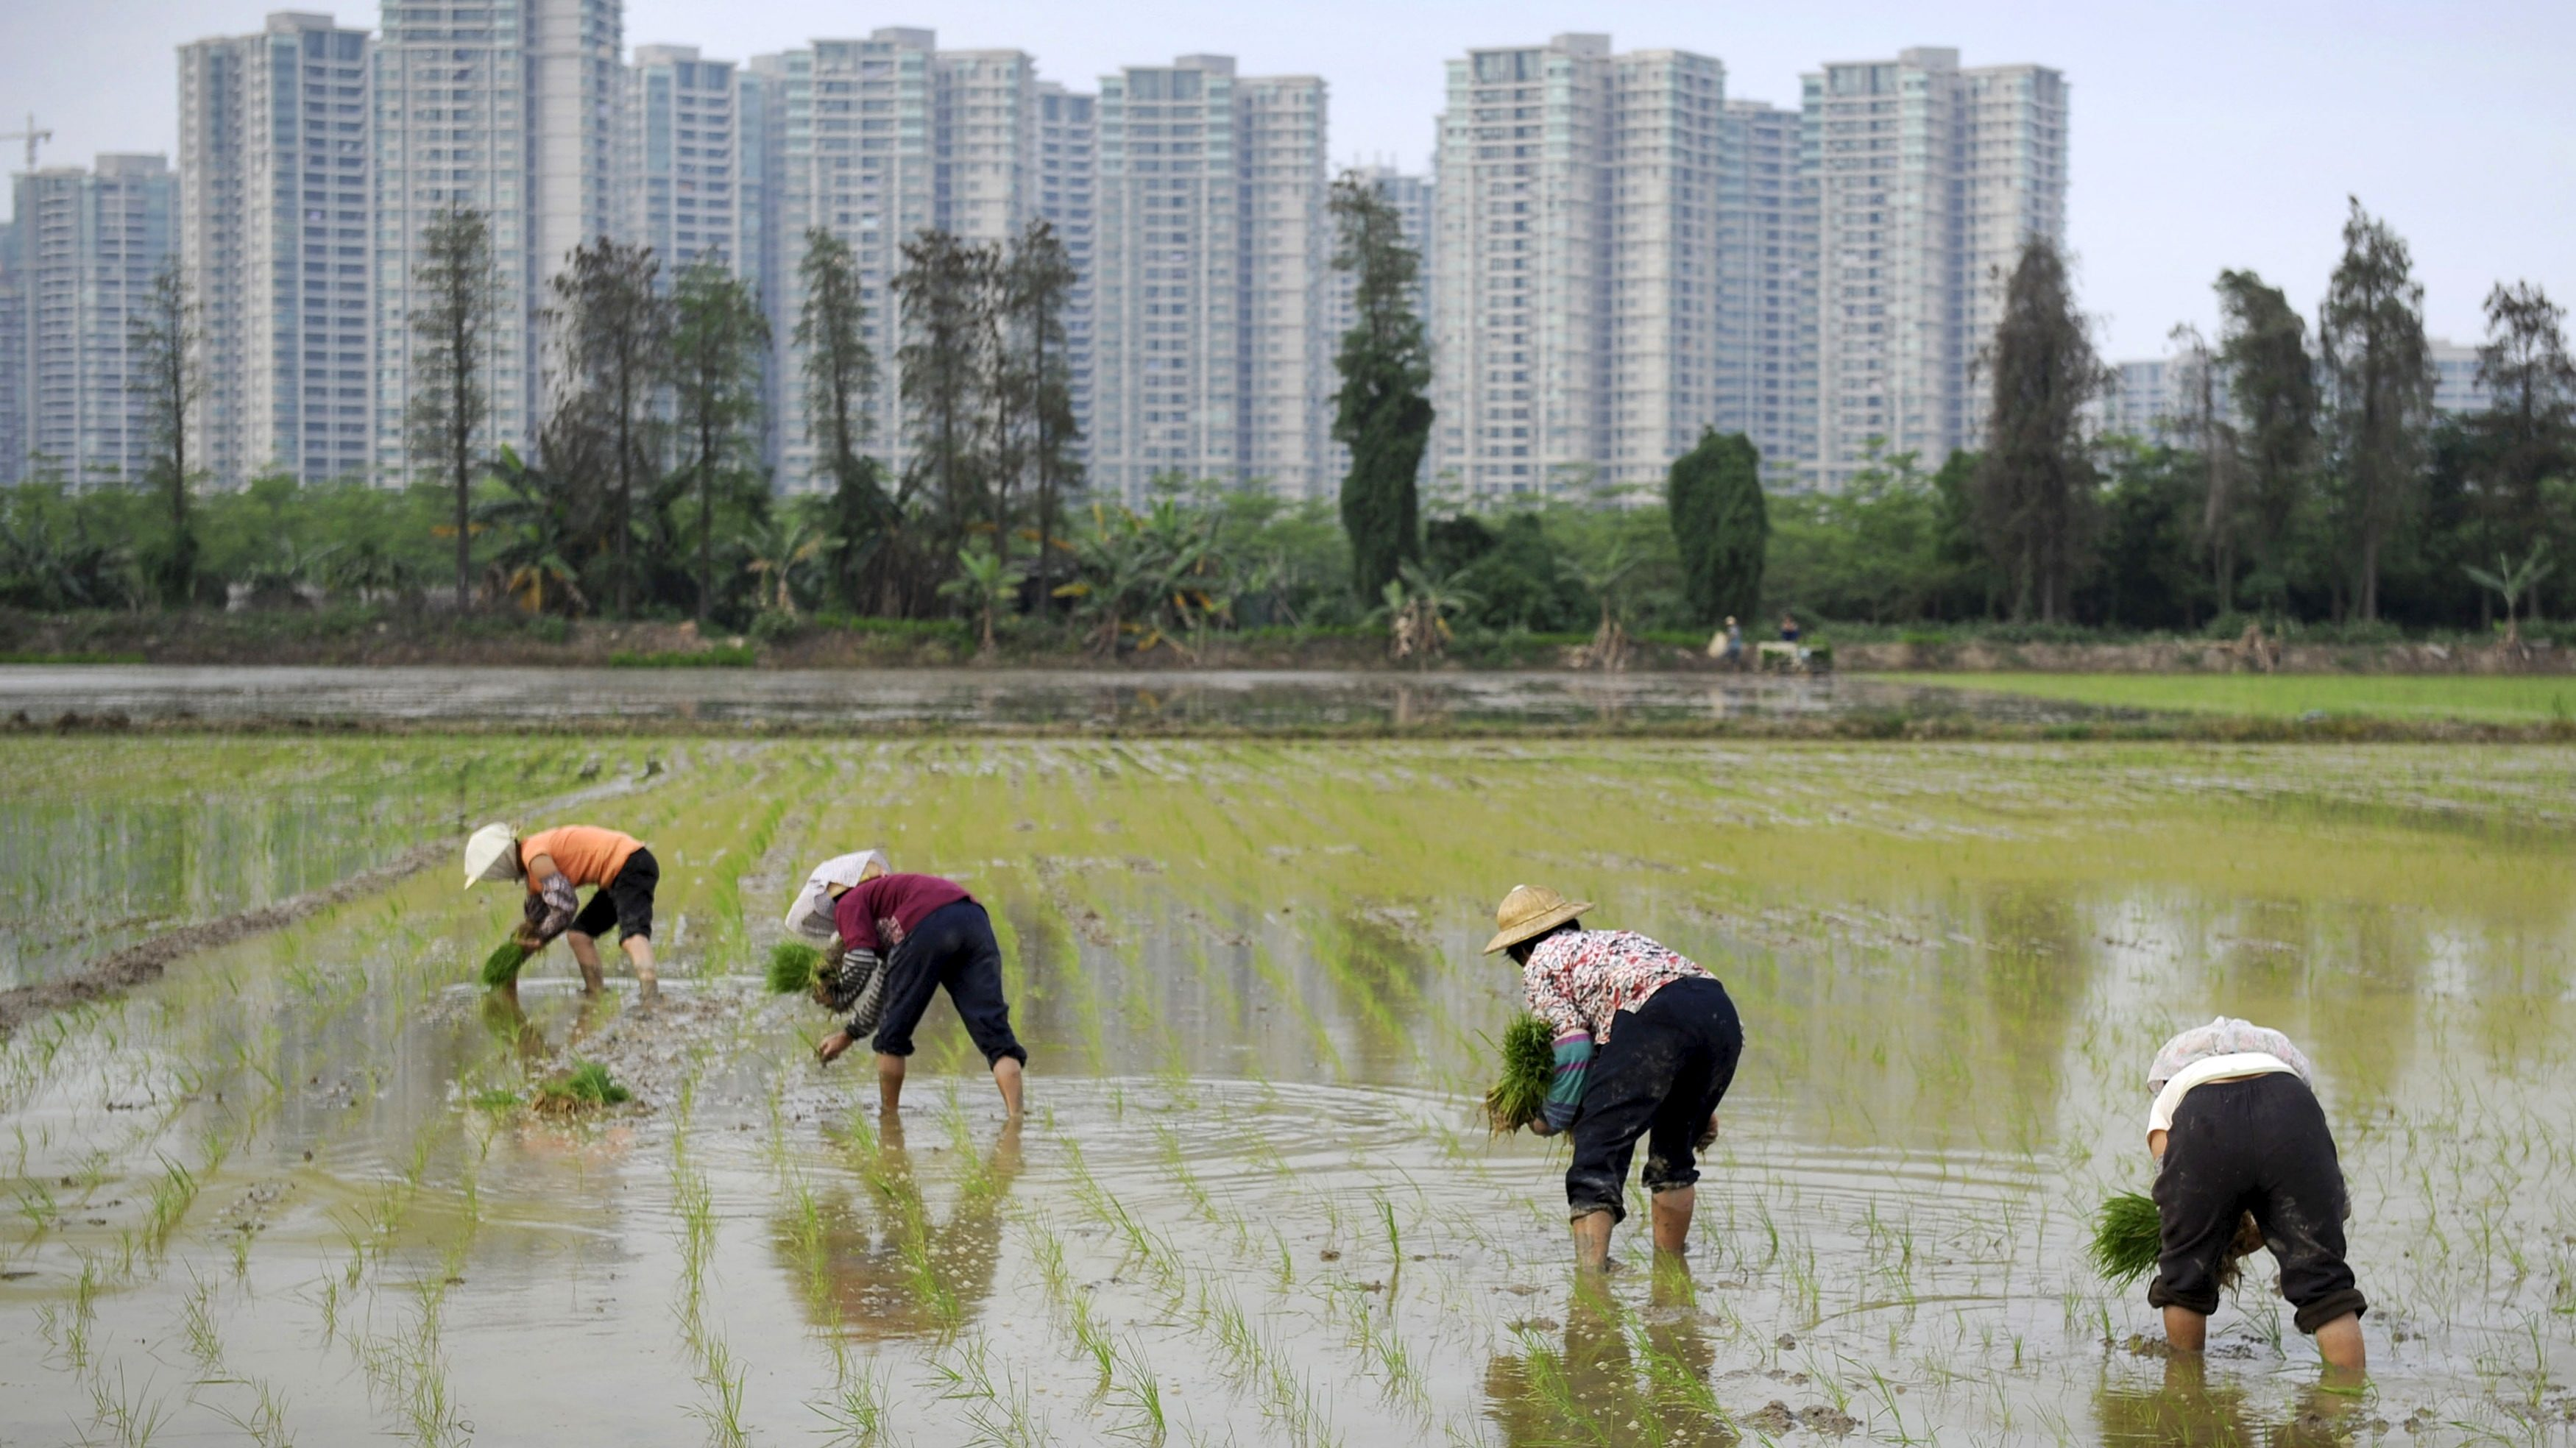 Farmers plant rice seedlings in a field near a residential compound in Shaxi township, Guangdong province March 29, 2015. China on Monday courted home buyers with a bigger tax break as it cut downpayment requirements for the second time in six months, stepping up a fight against sliding house prices that is imperiling the world's second-biggest economy. Picture taken March 29, 2015.